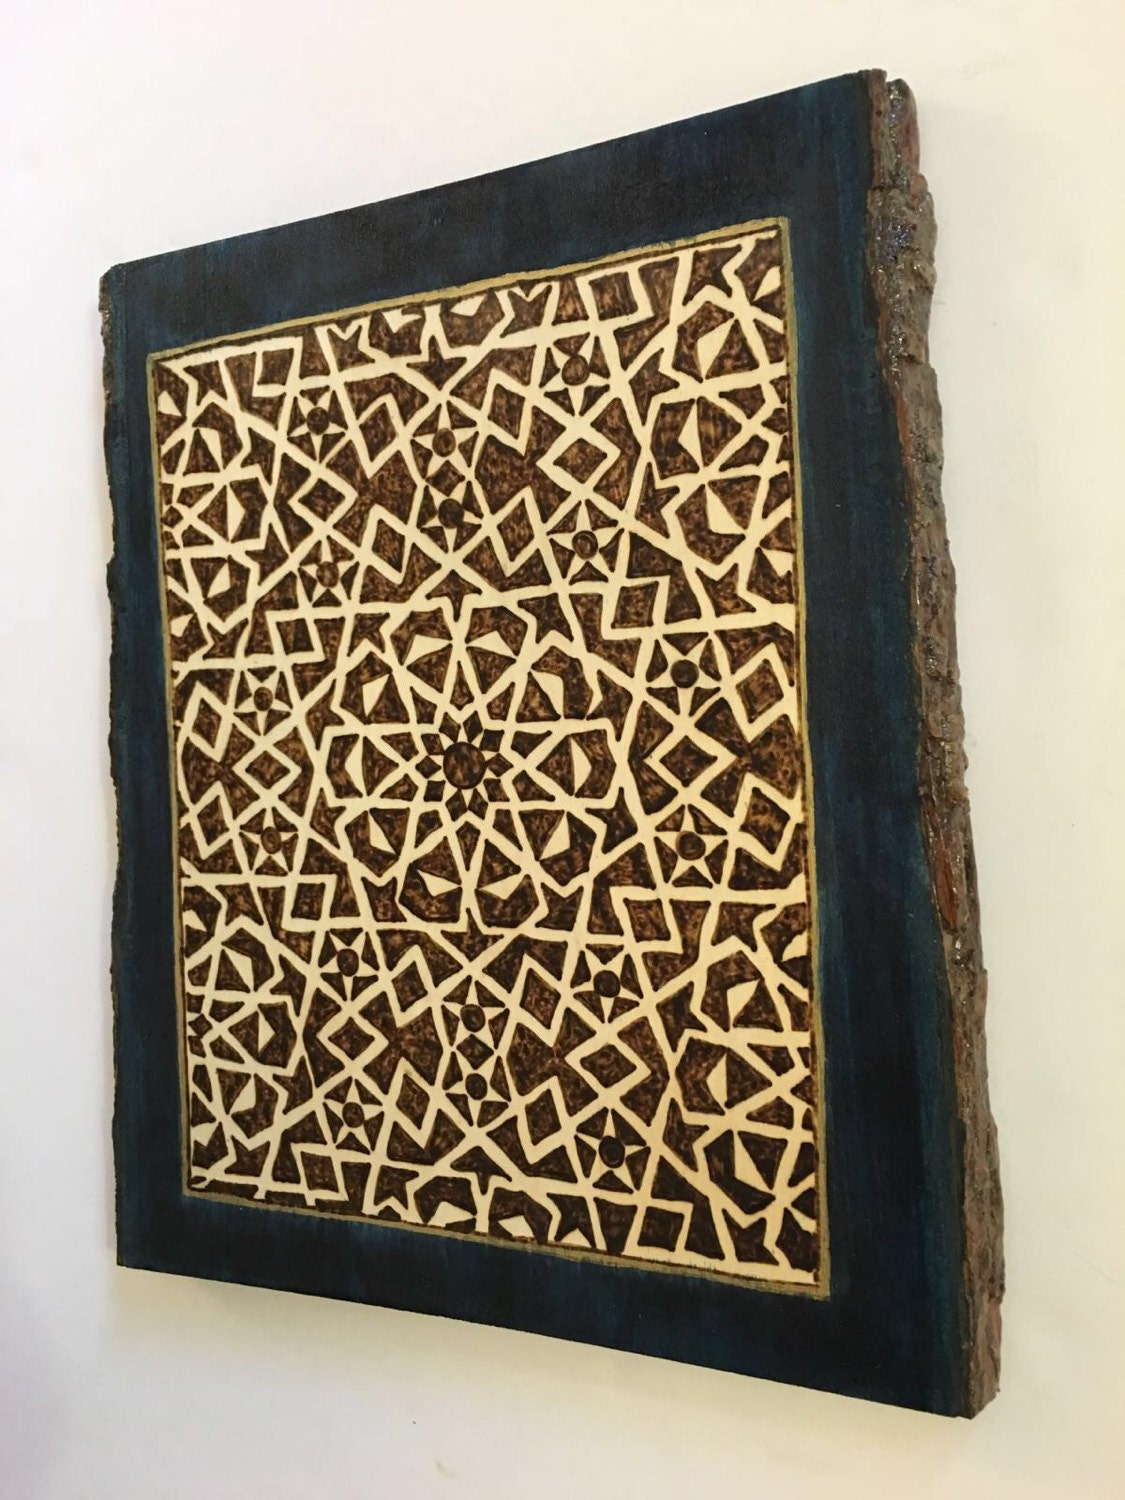 Wood Wall Art; Wood Wall Decor; Wall Hanging; Plaque; Islamic Wall Art;  Geometric Arabesque; Wood Decor; Mamluk Art; Medieval Islamic Art